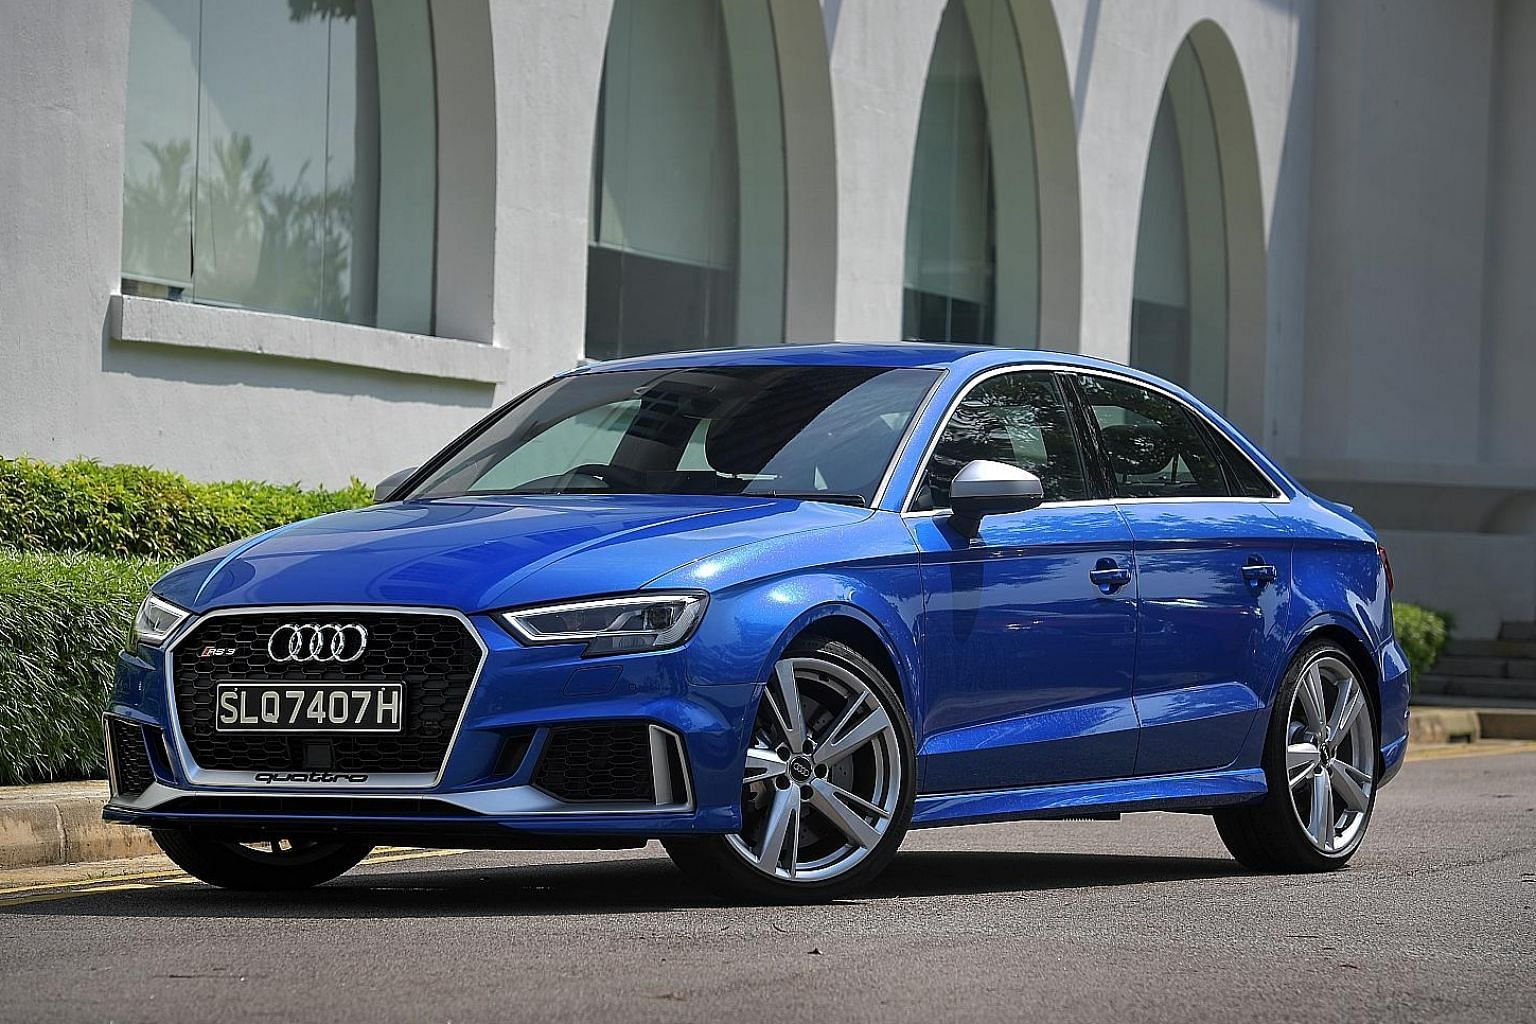 The Audi RS3 Sedan's effortless steering, unshakeable traction and powerful engine make for an electrifying drive.